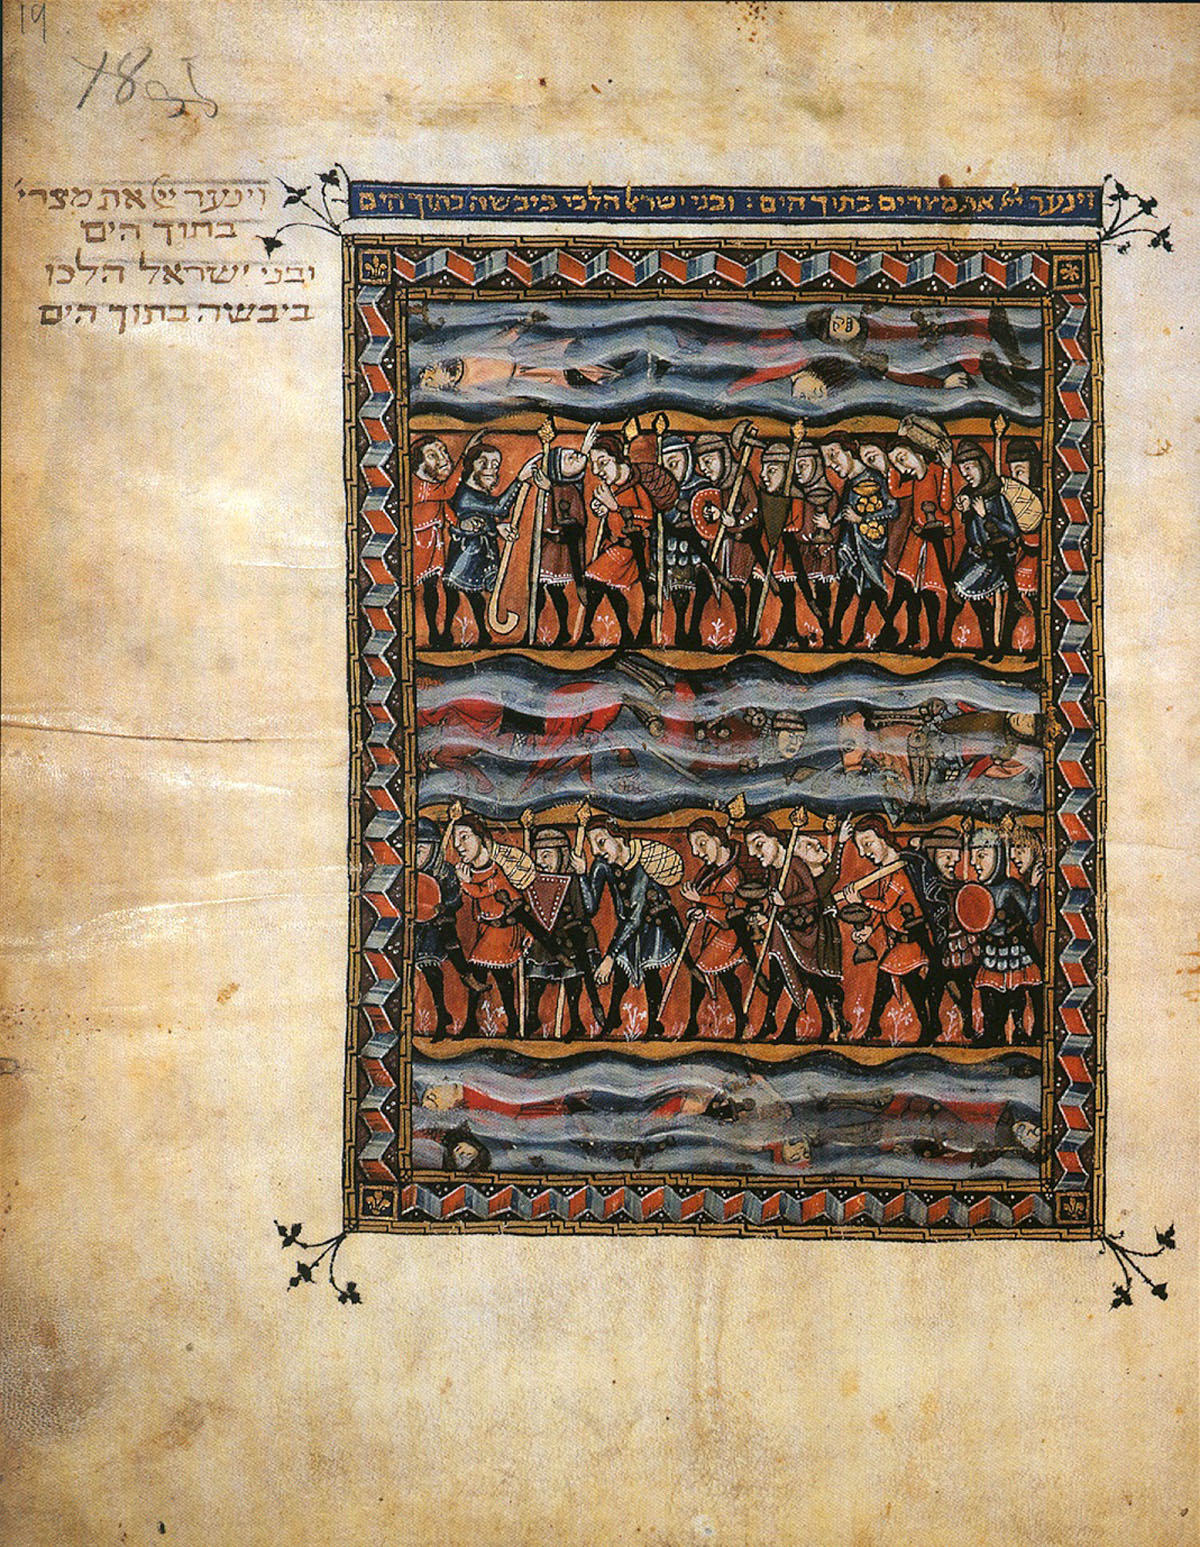 Crossing the Red Sea, (ca.1330) Tempera, gold, ink on parchment: Rylands Haggadah Courtesy The John Rylands University Library, University of Manchester, England